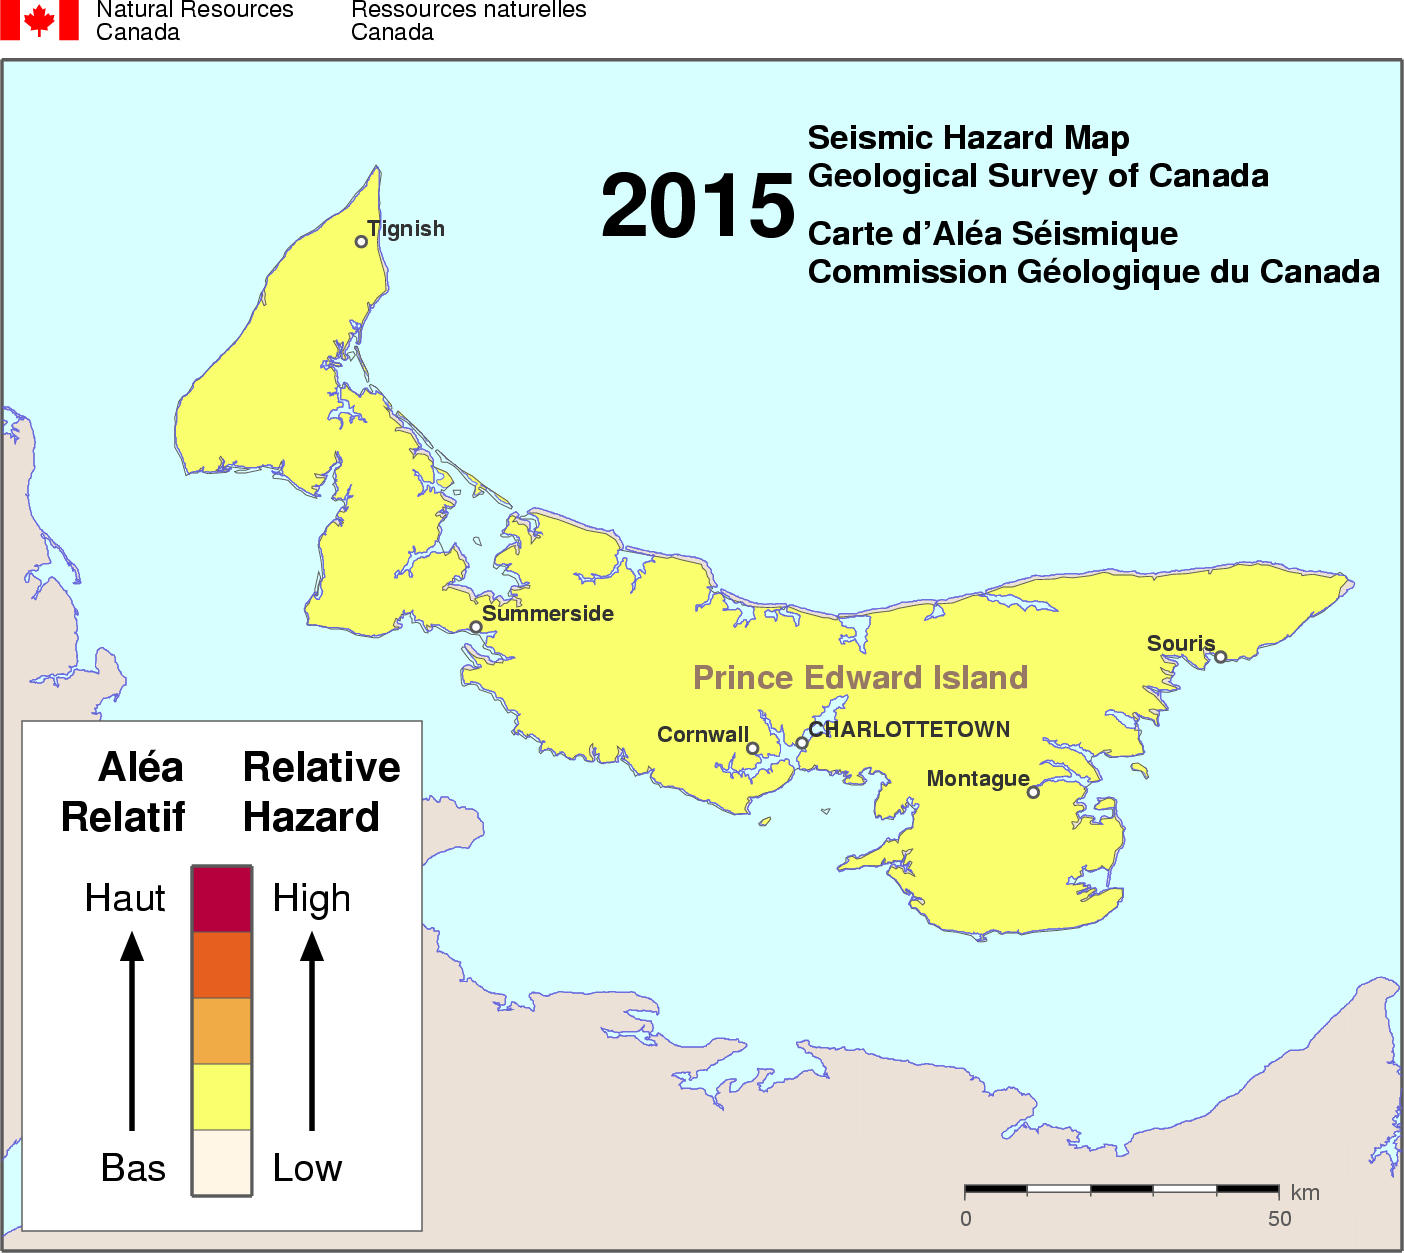 2015 NBCC seismic hazard map - PE